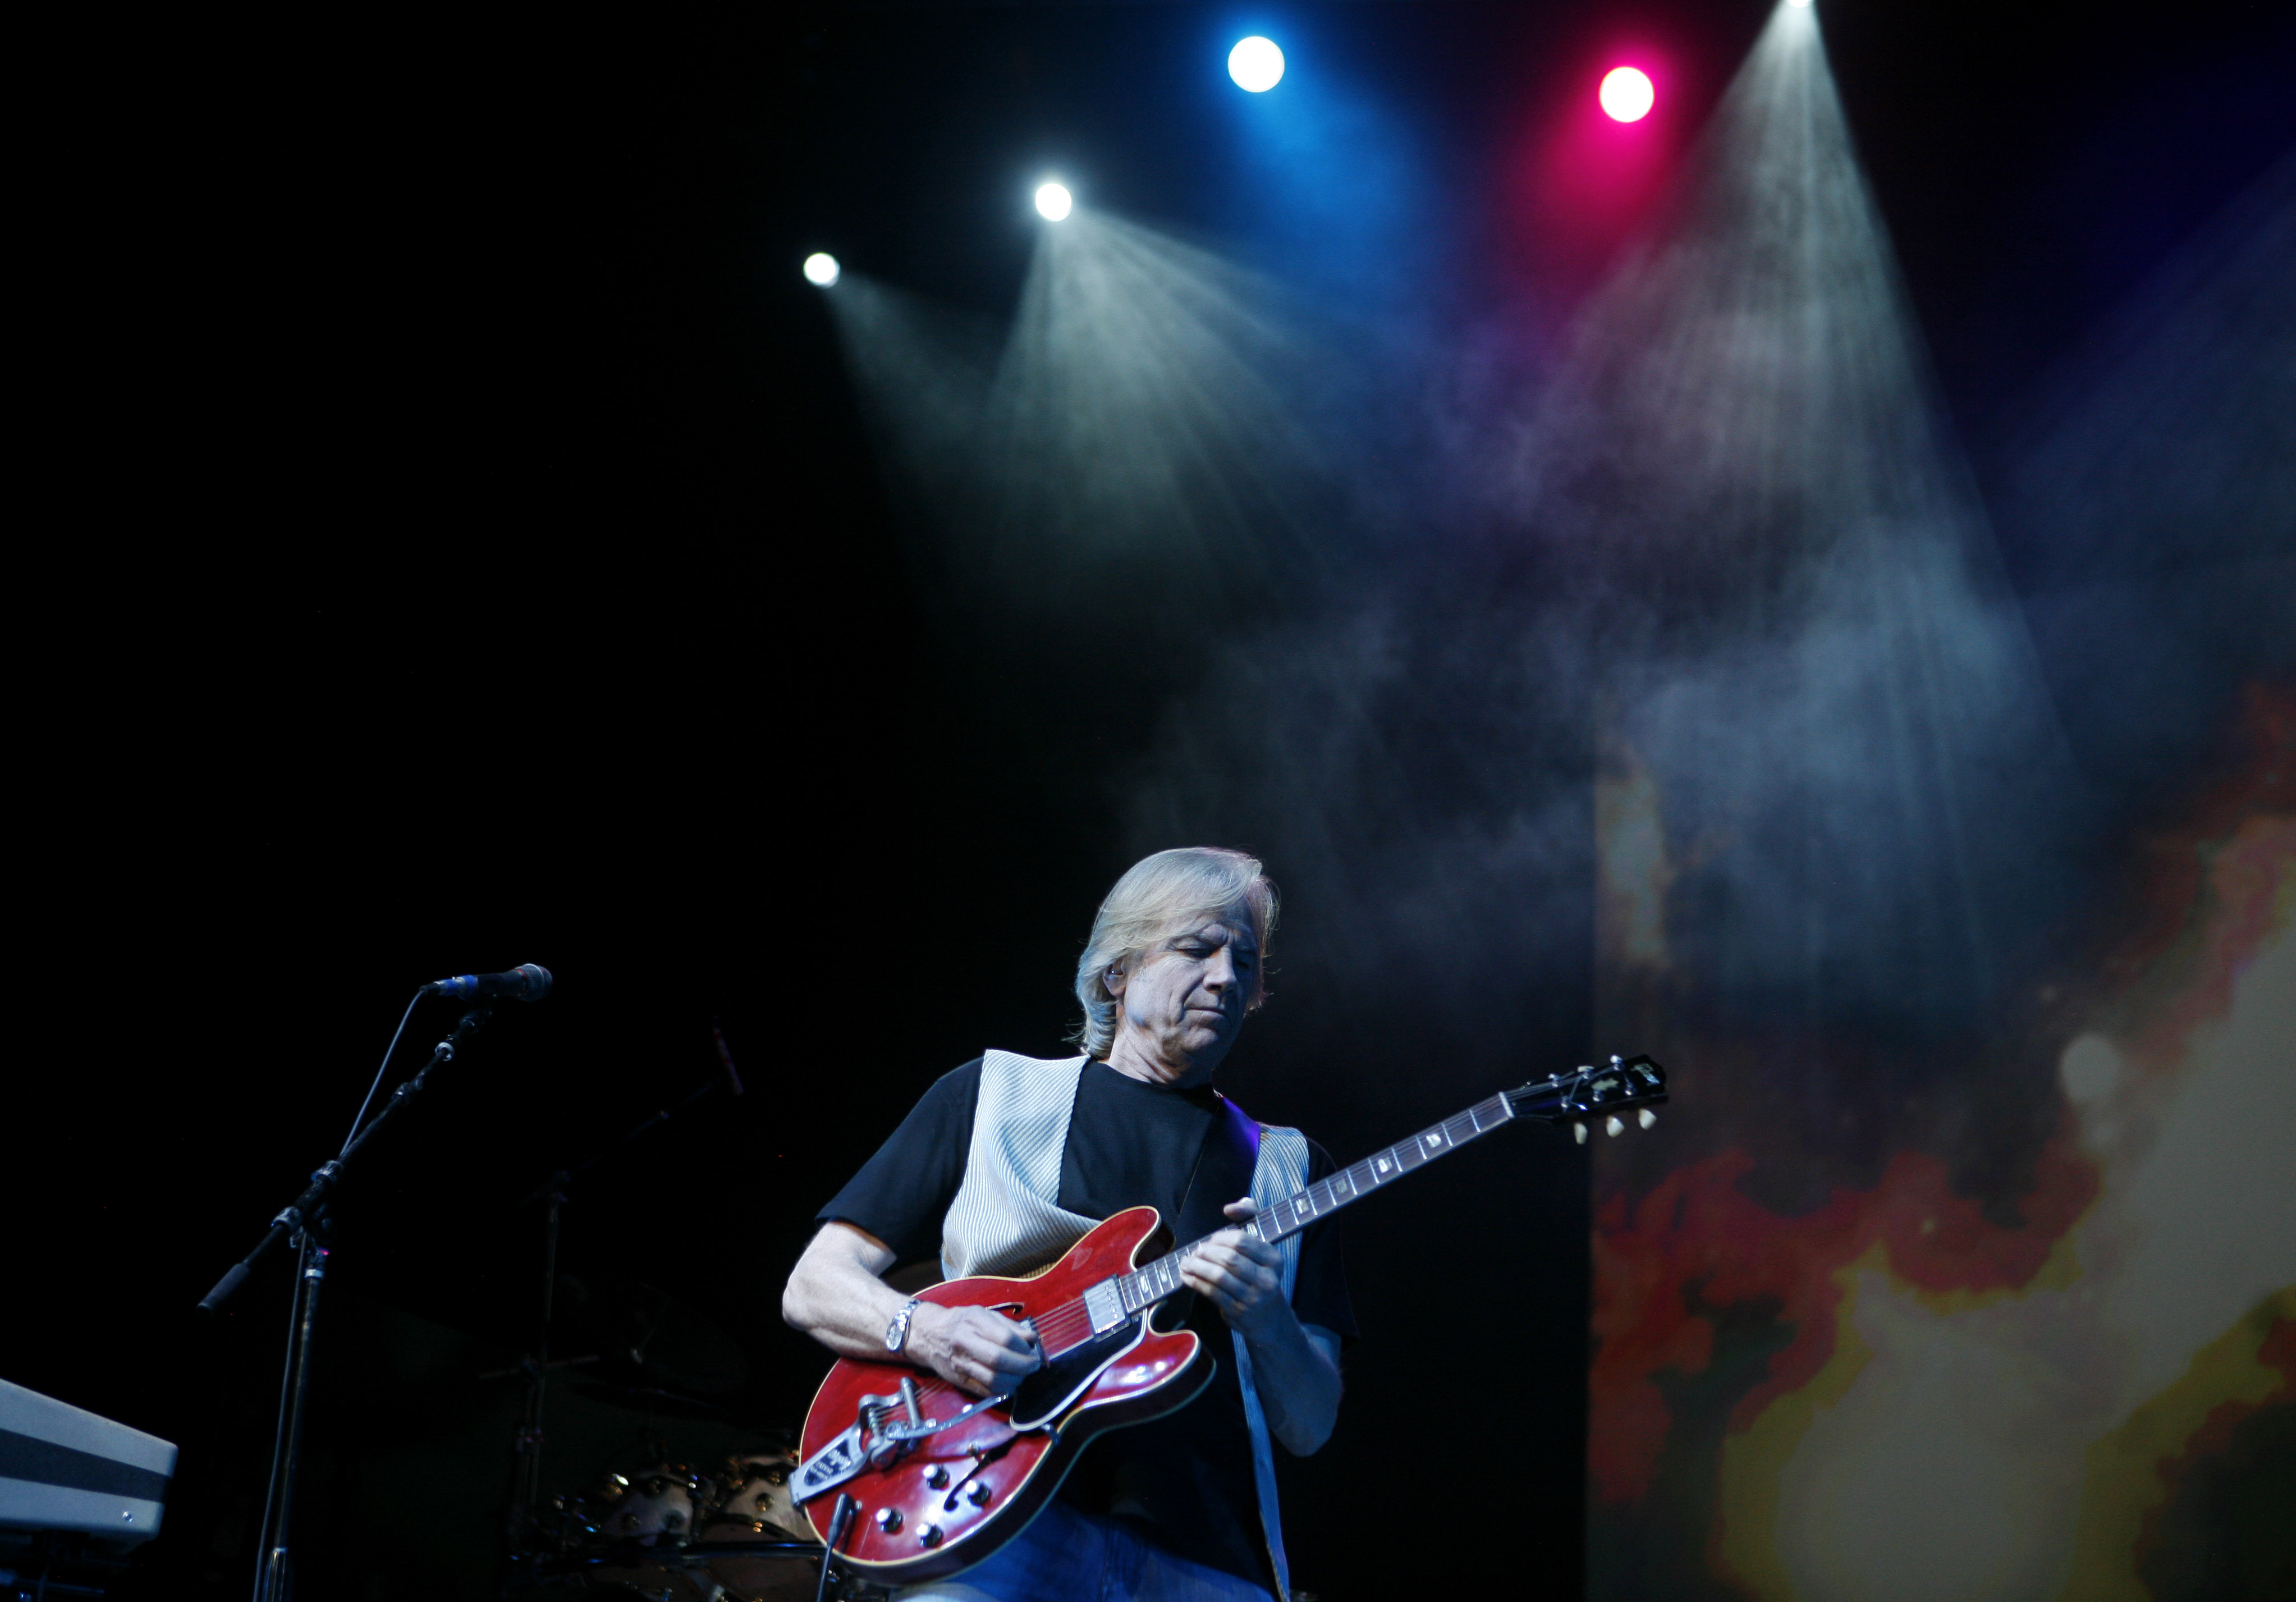 Justin Hayward of Moody Blues rocks Birchmere; The Monkees mark 50 years at Warner Theatre